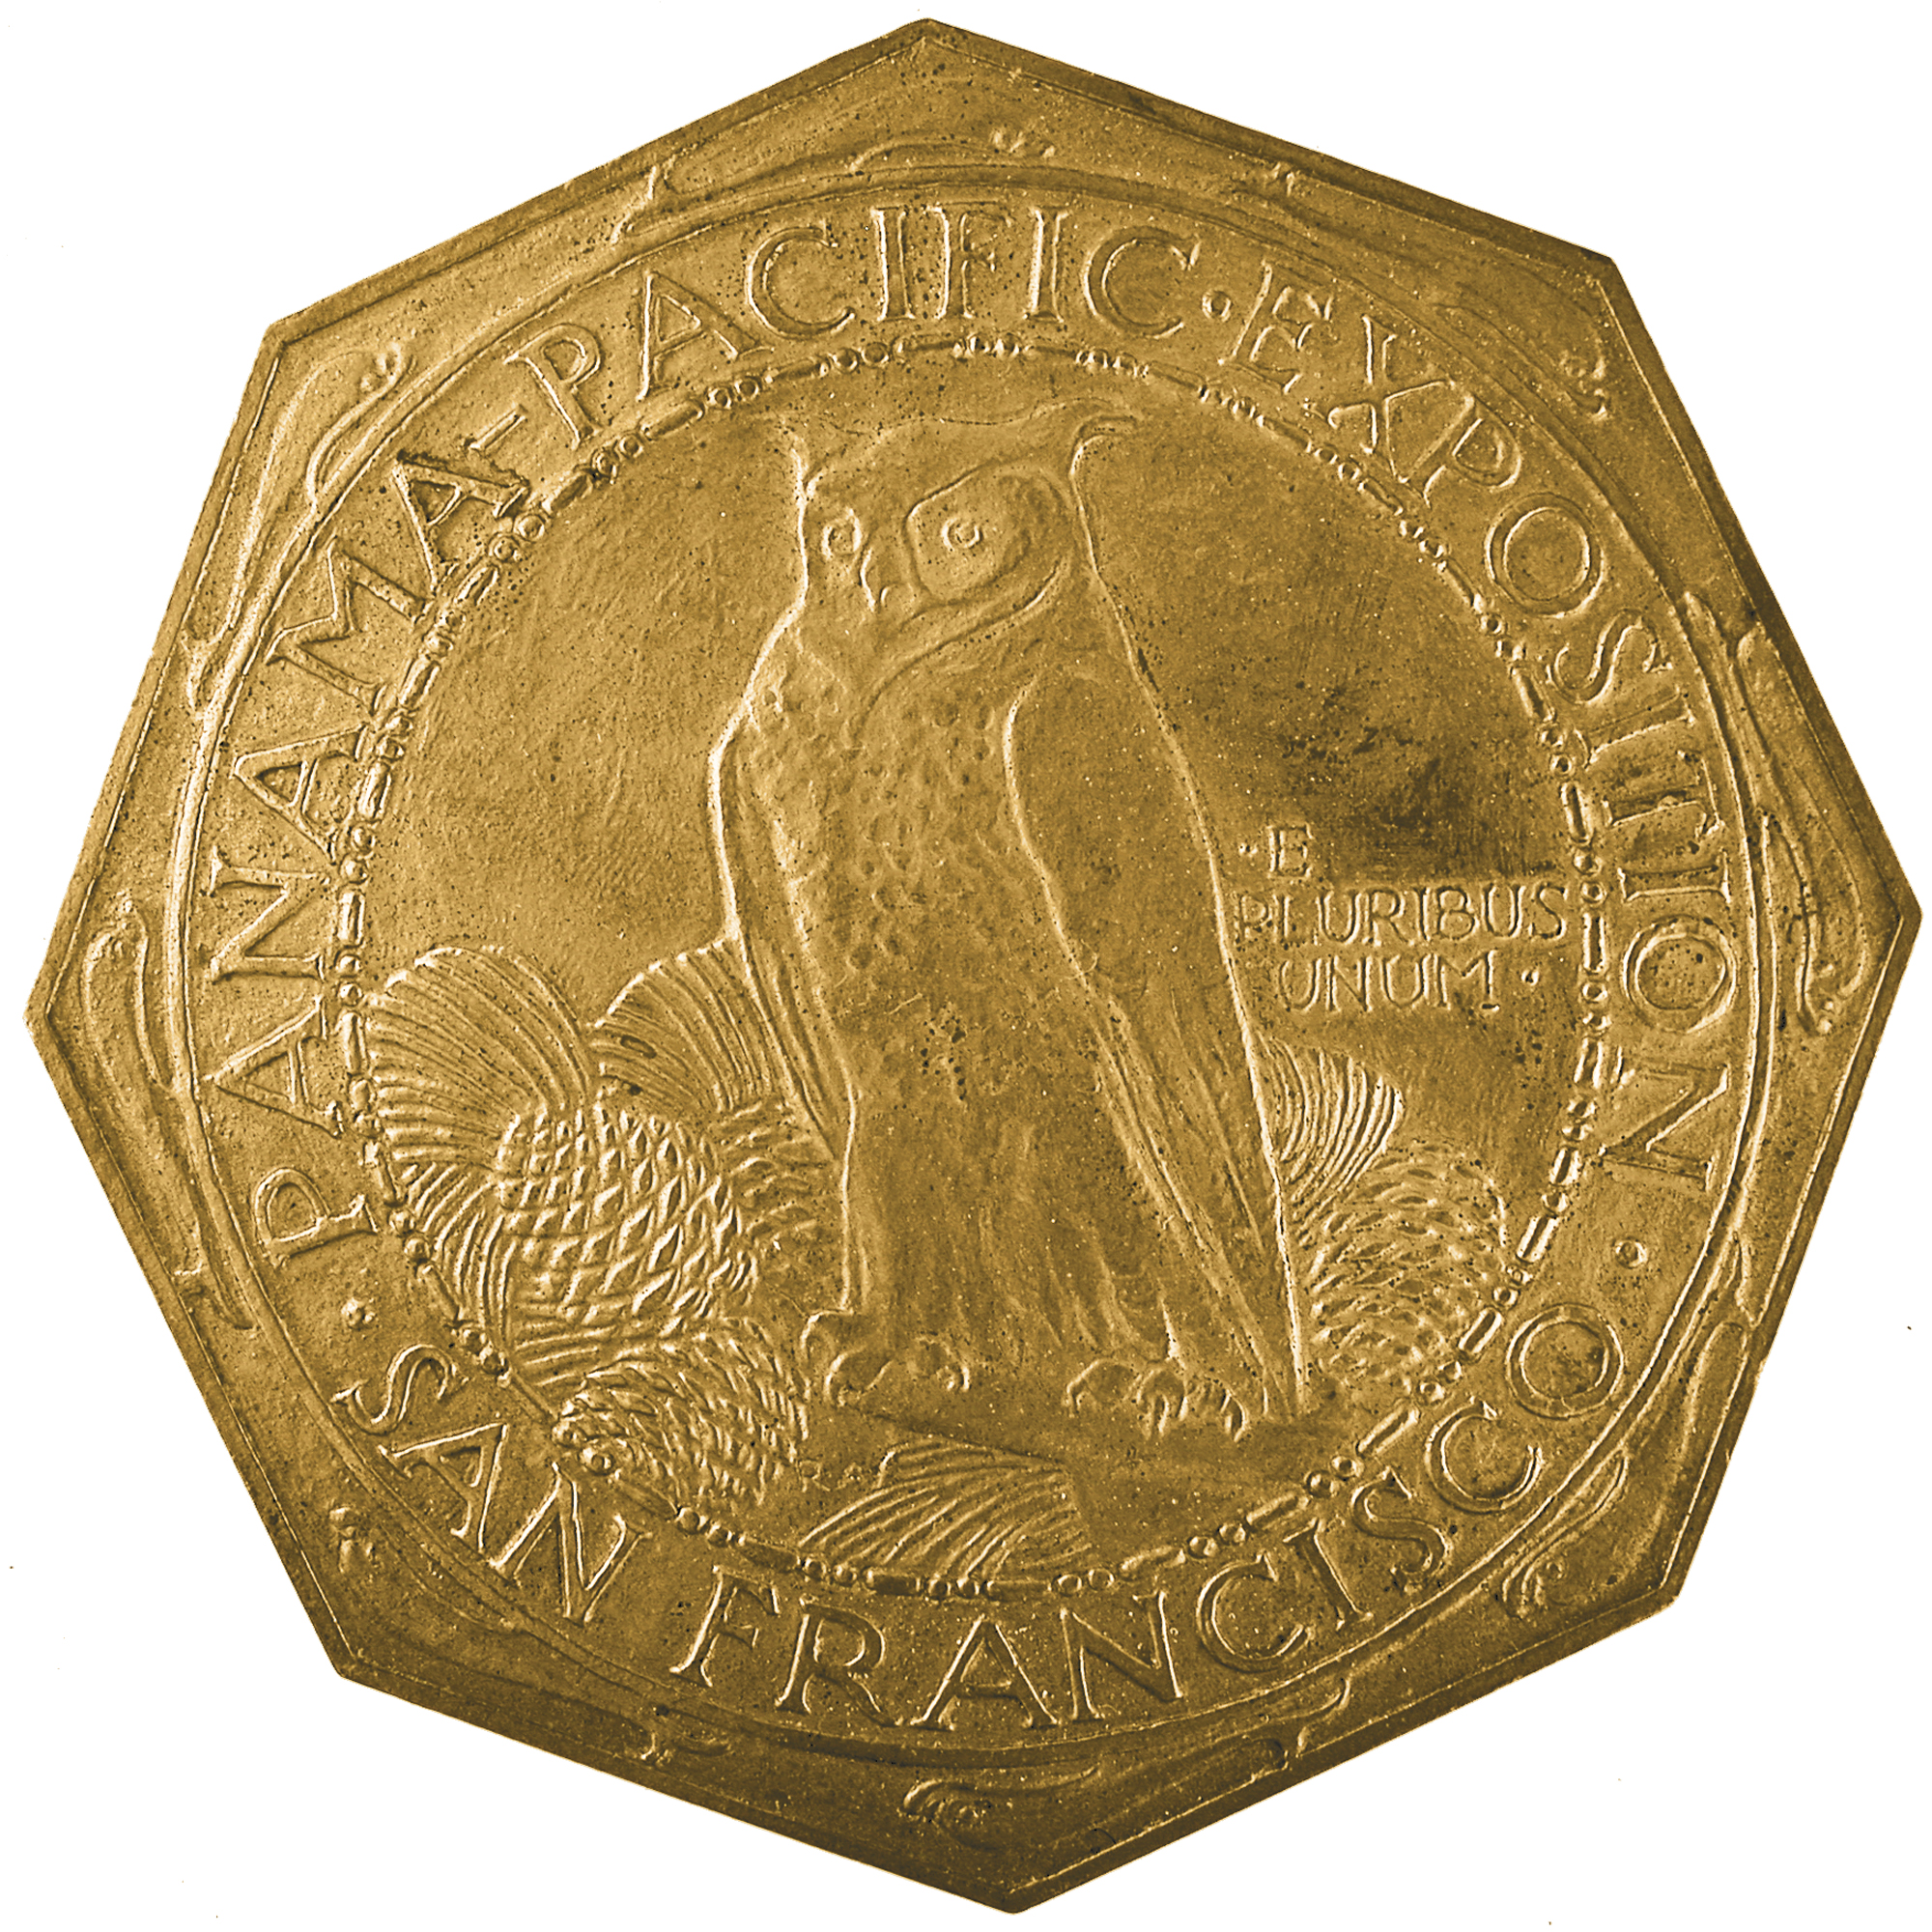 1915 Panama Pacific Exposition Commemorative Octagonal Gold Fifty Dollar Coin Obverse